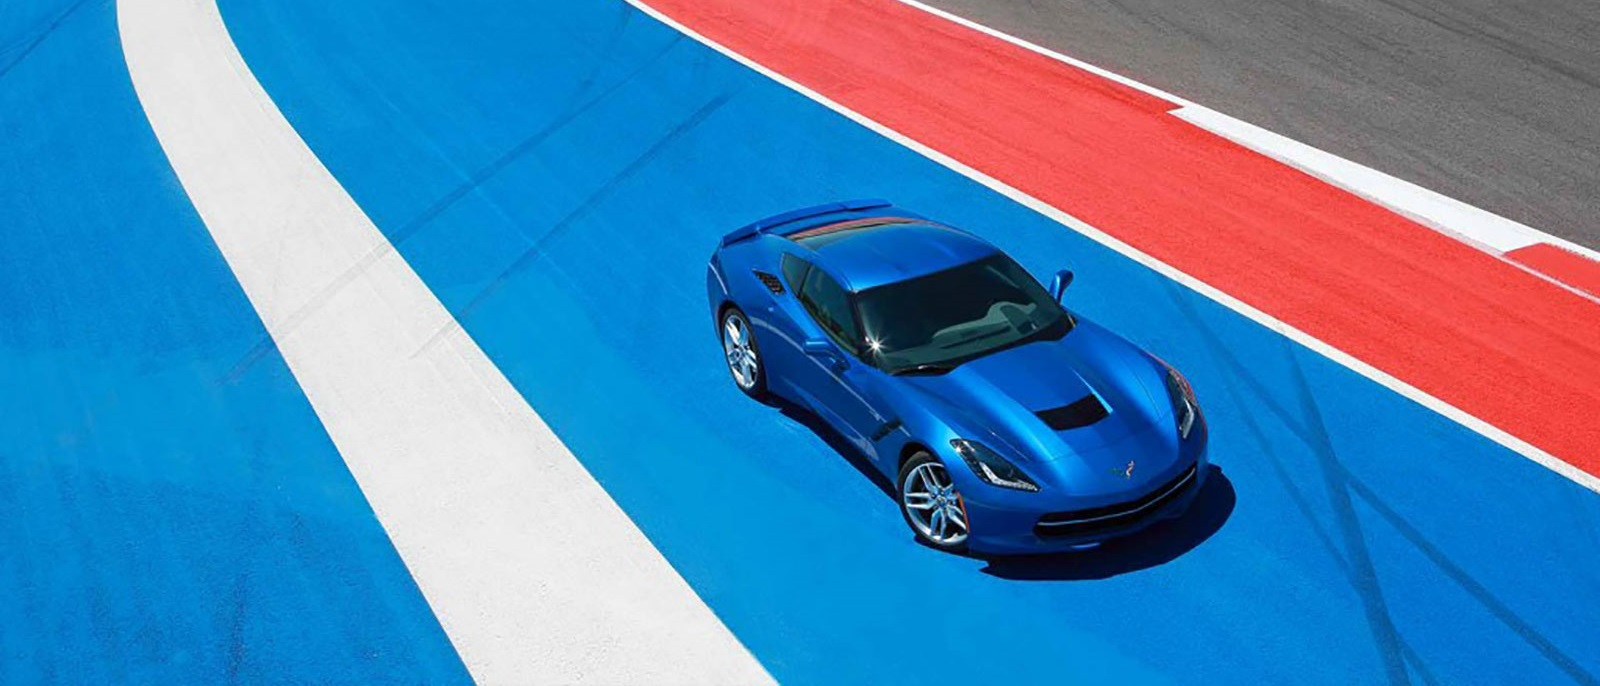 2015 Corvette Stingray on racetrack